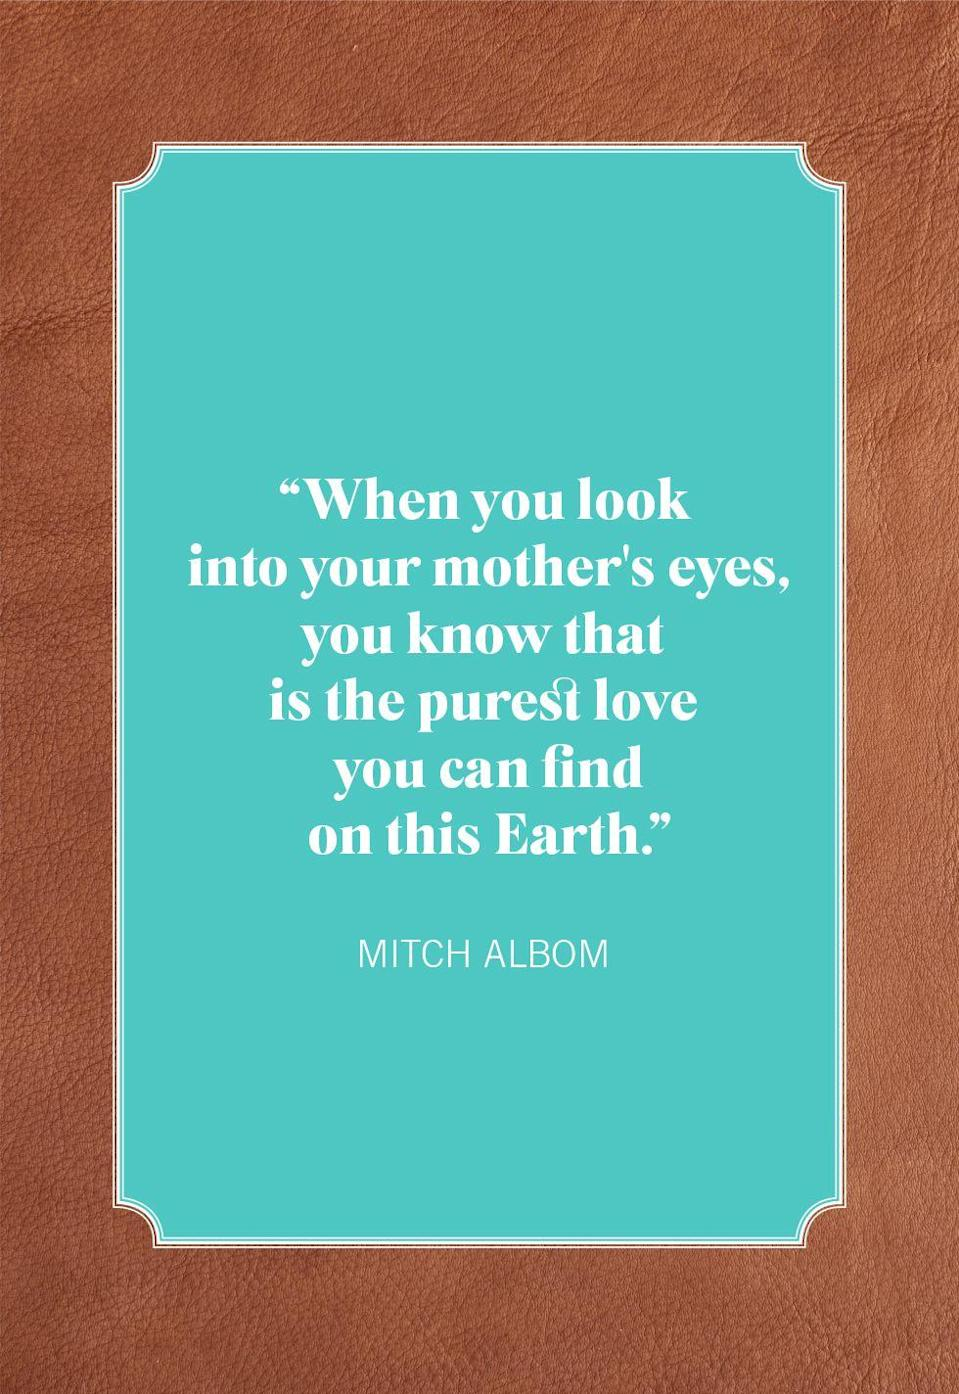 """<p>""""When you look into your mother's eyes, you know that is the purest love you can find on this Earth.""""</p>"""